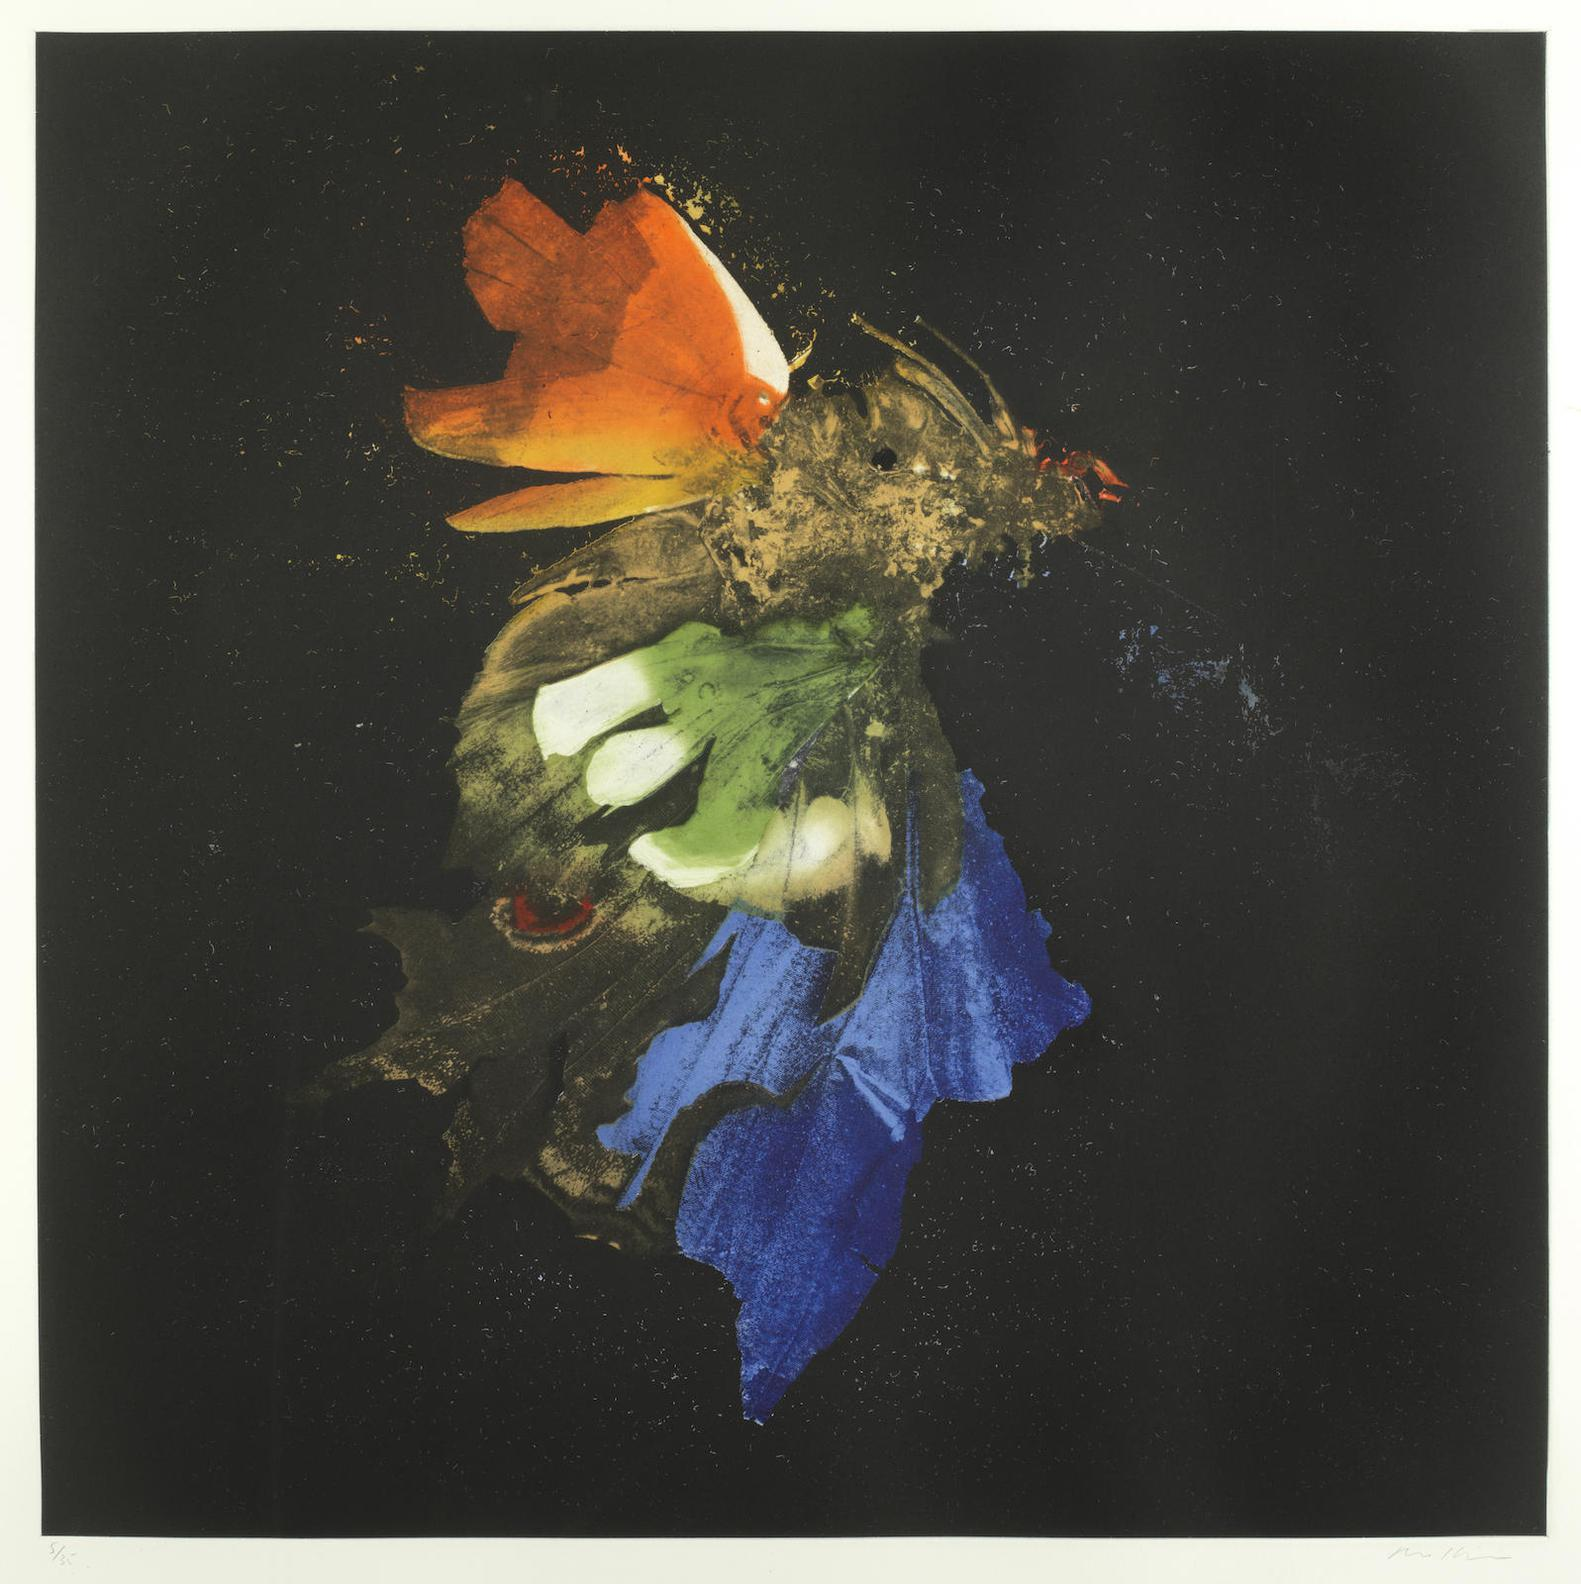 Mat Collishaw-Insecticide 15-2010